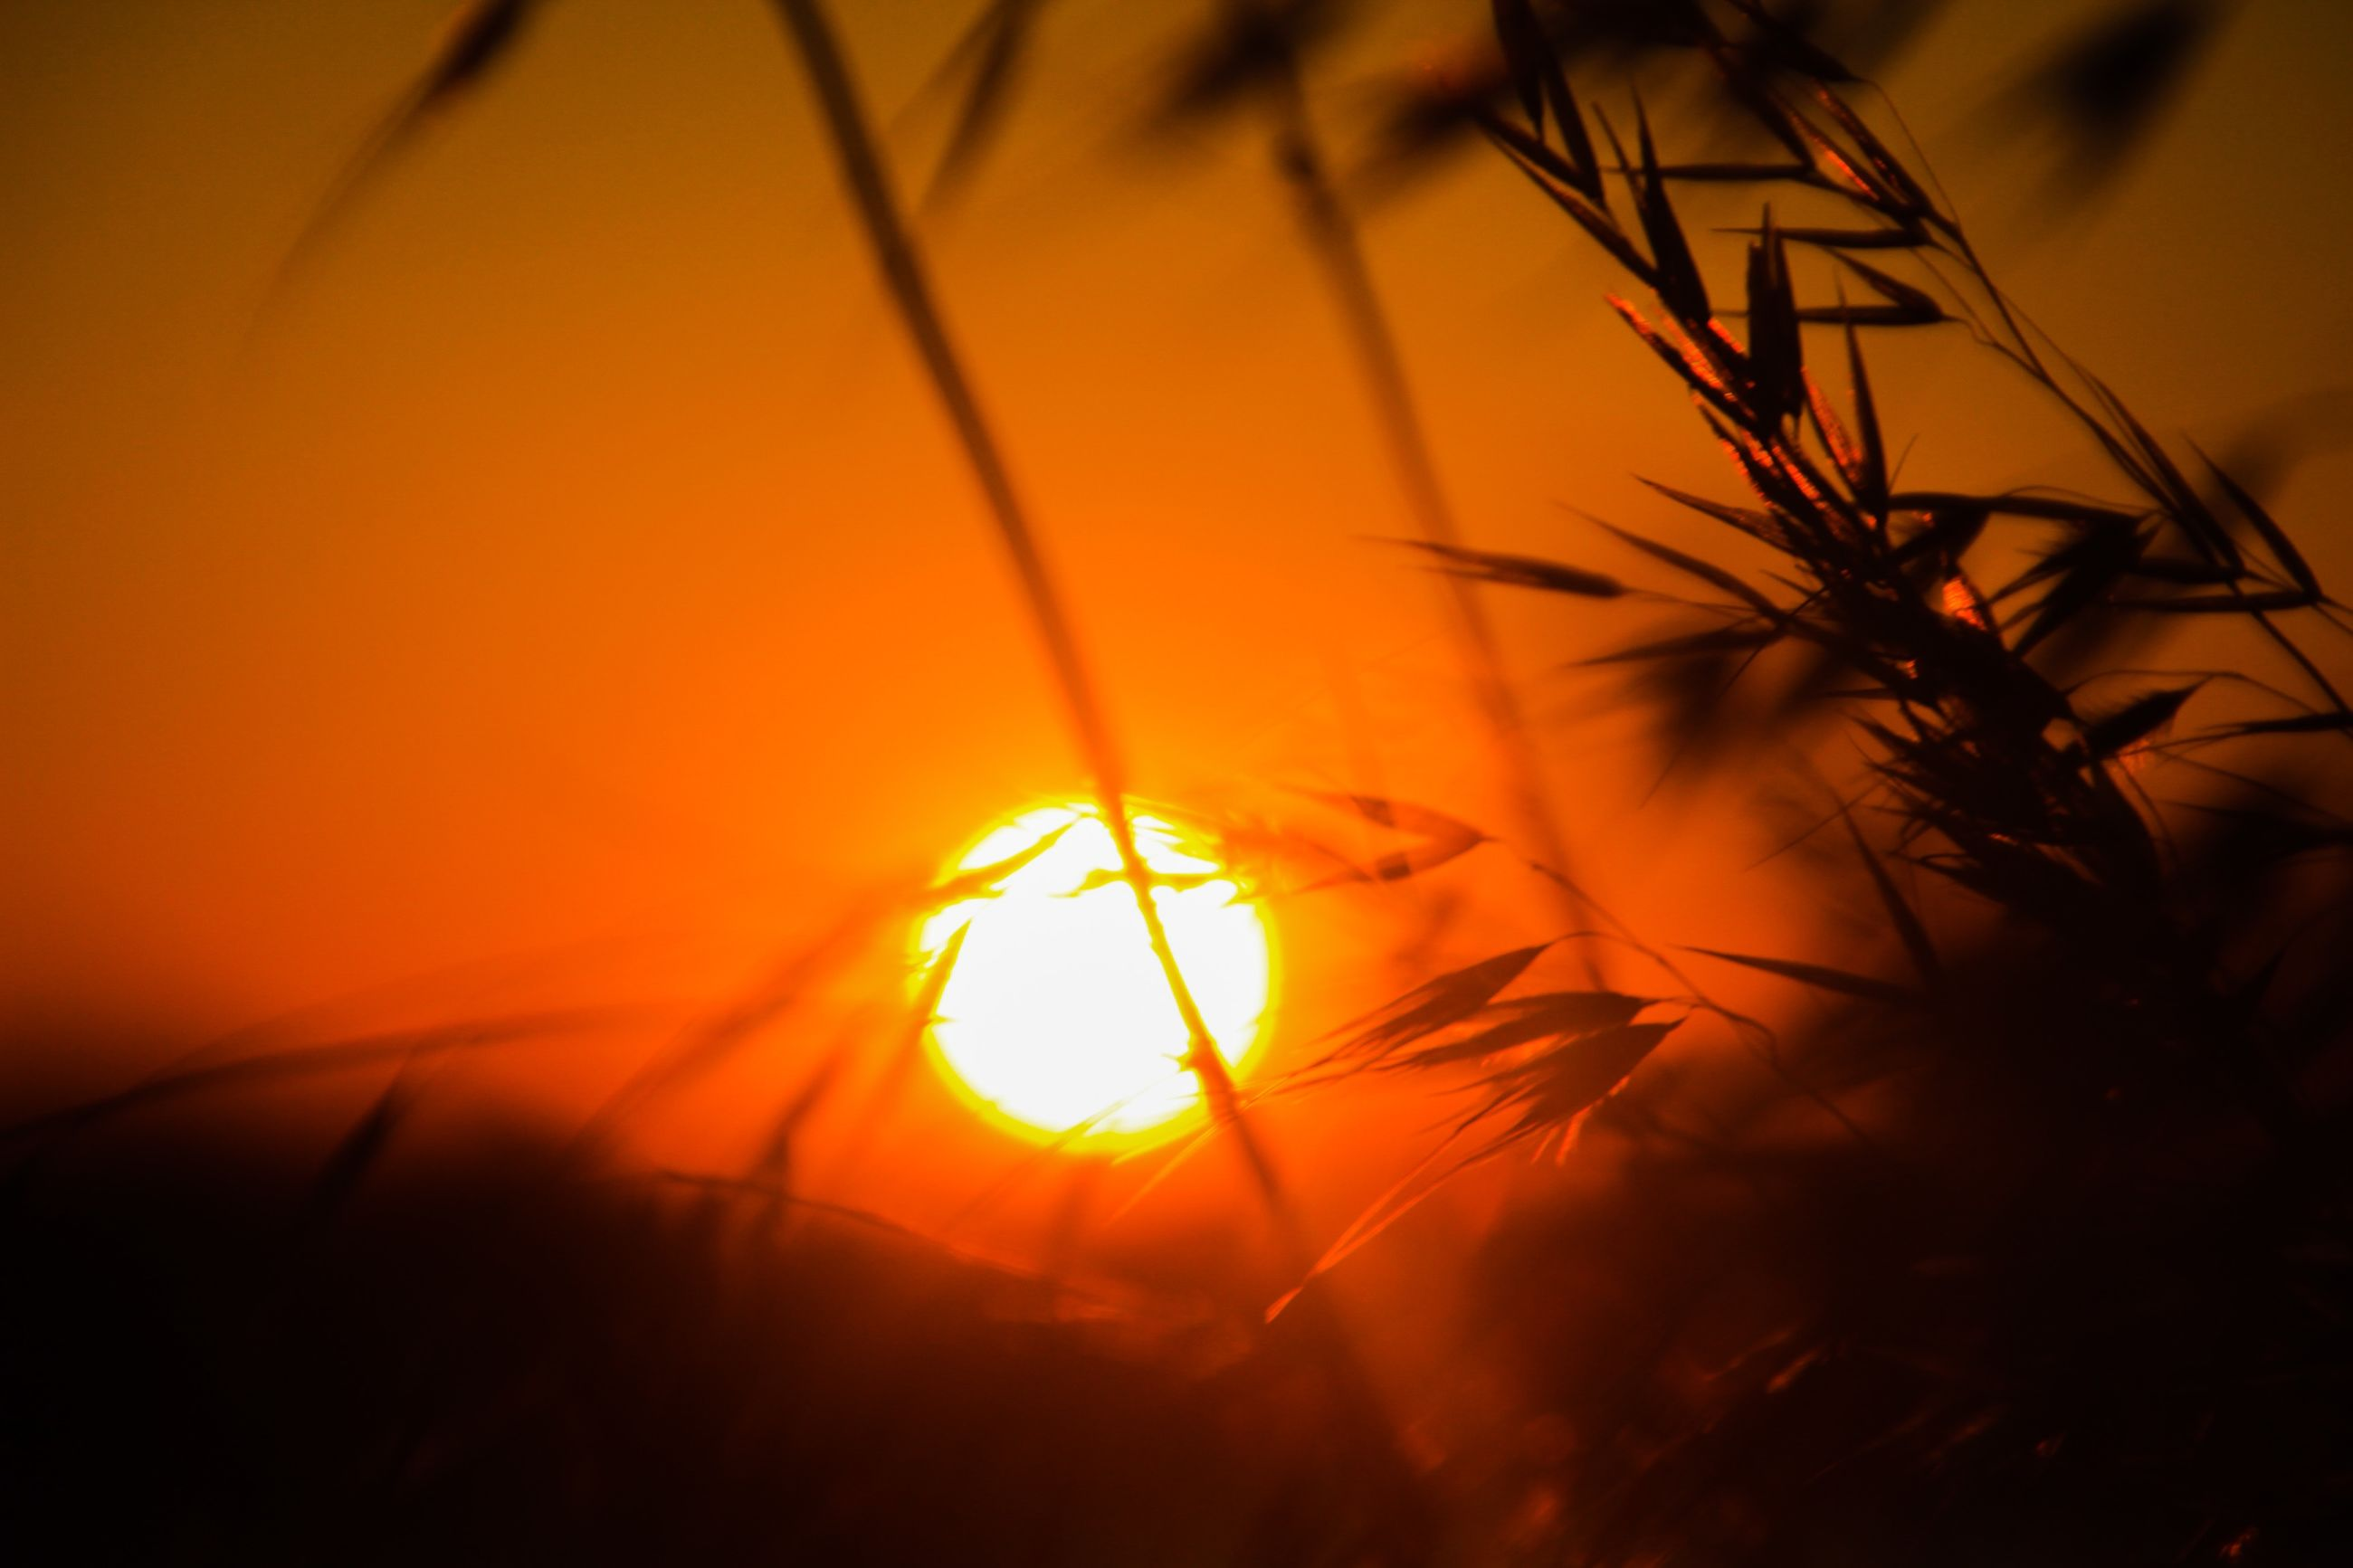 sunset, orange color, sun, silhouette, beauty in nature, nature, sunlight, plant, growth, tranquility, close-up, scenics, yellow, sky, outdoors, no people, idyllic, tranquil scene, back lit, field